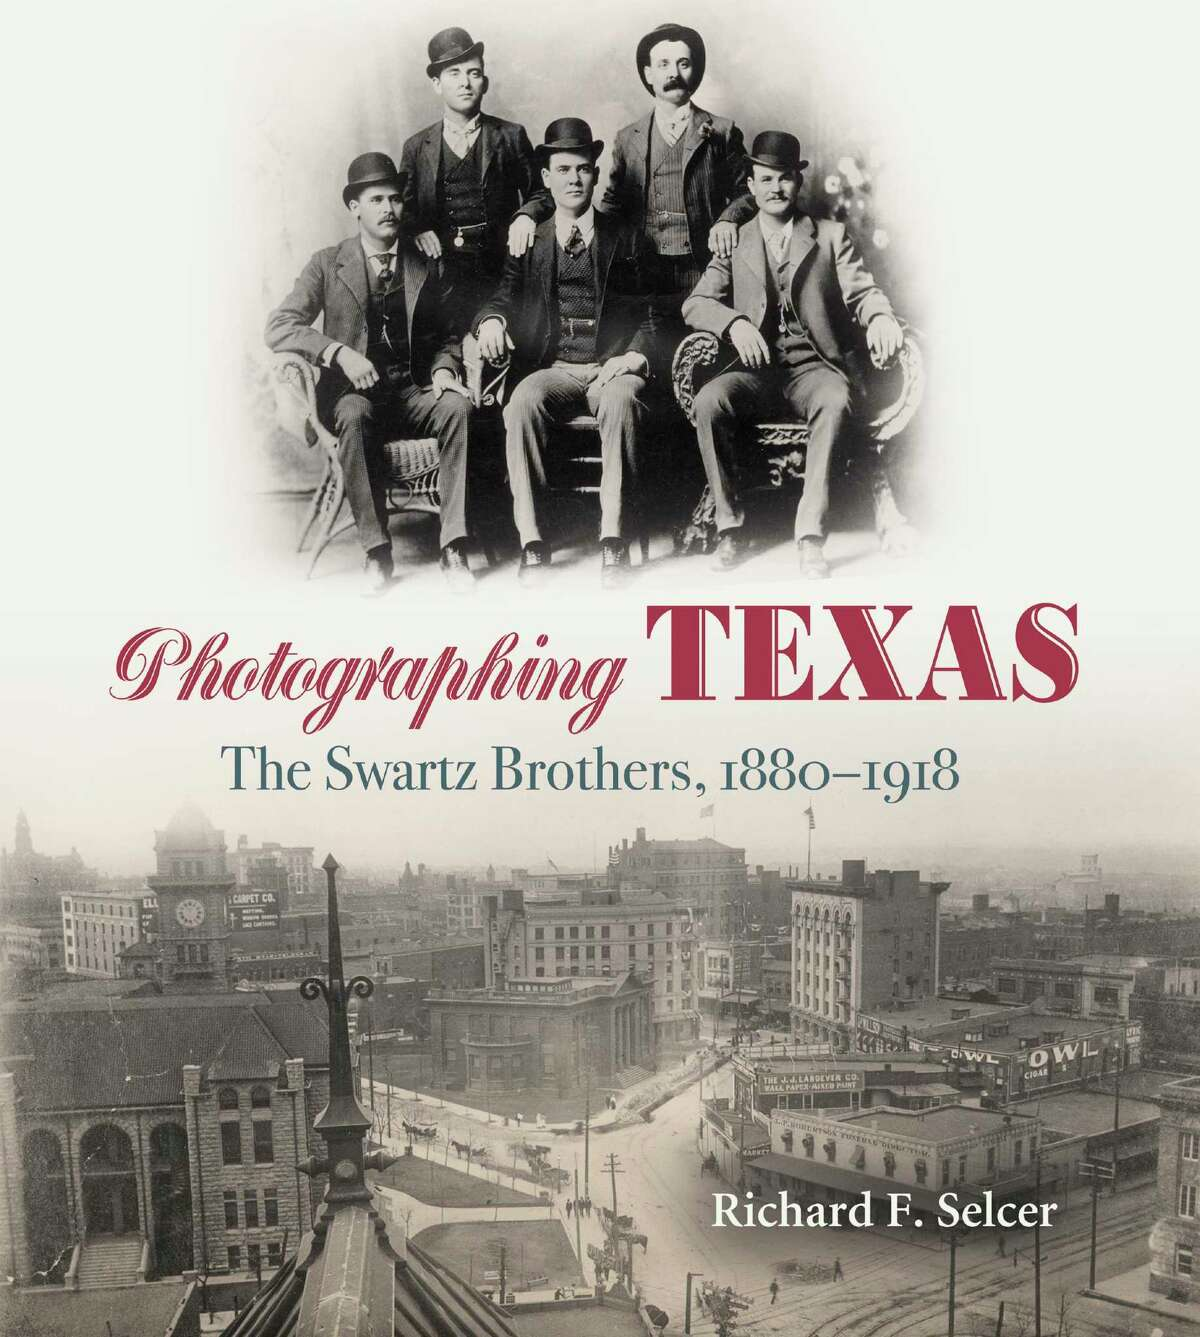 'Photographing Texas: The Swartz Brothers, 1880-1918' by Richard Selcer ($40, Texas A&M University Press)